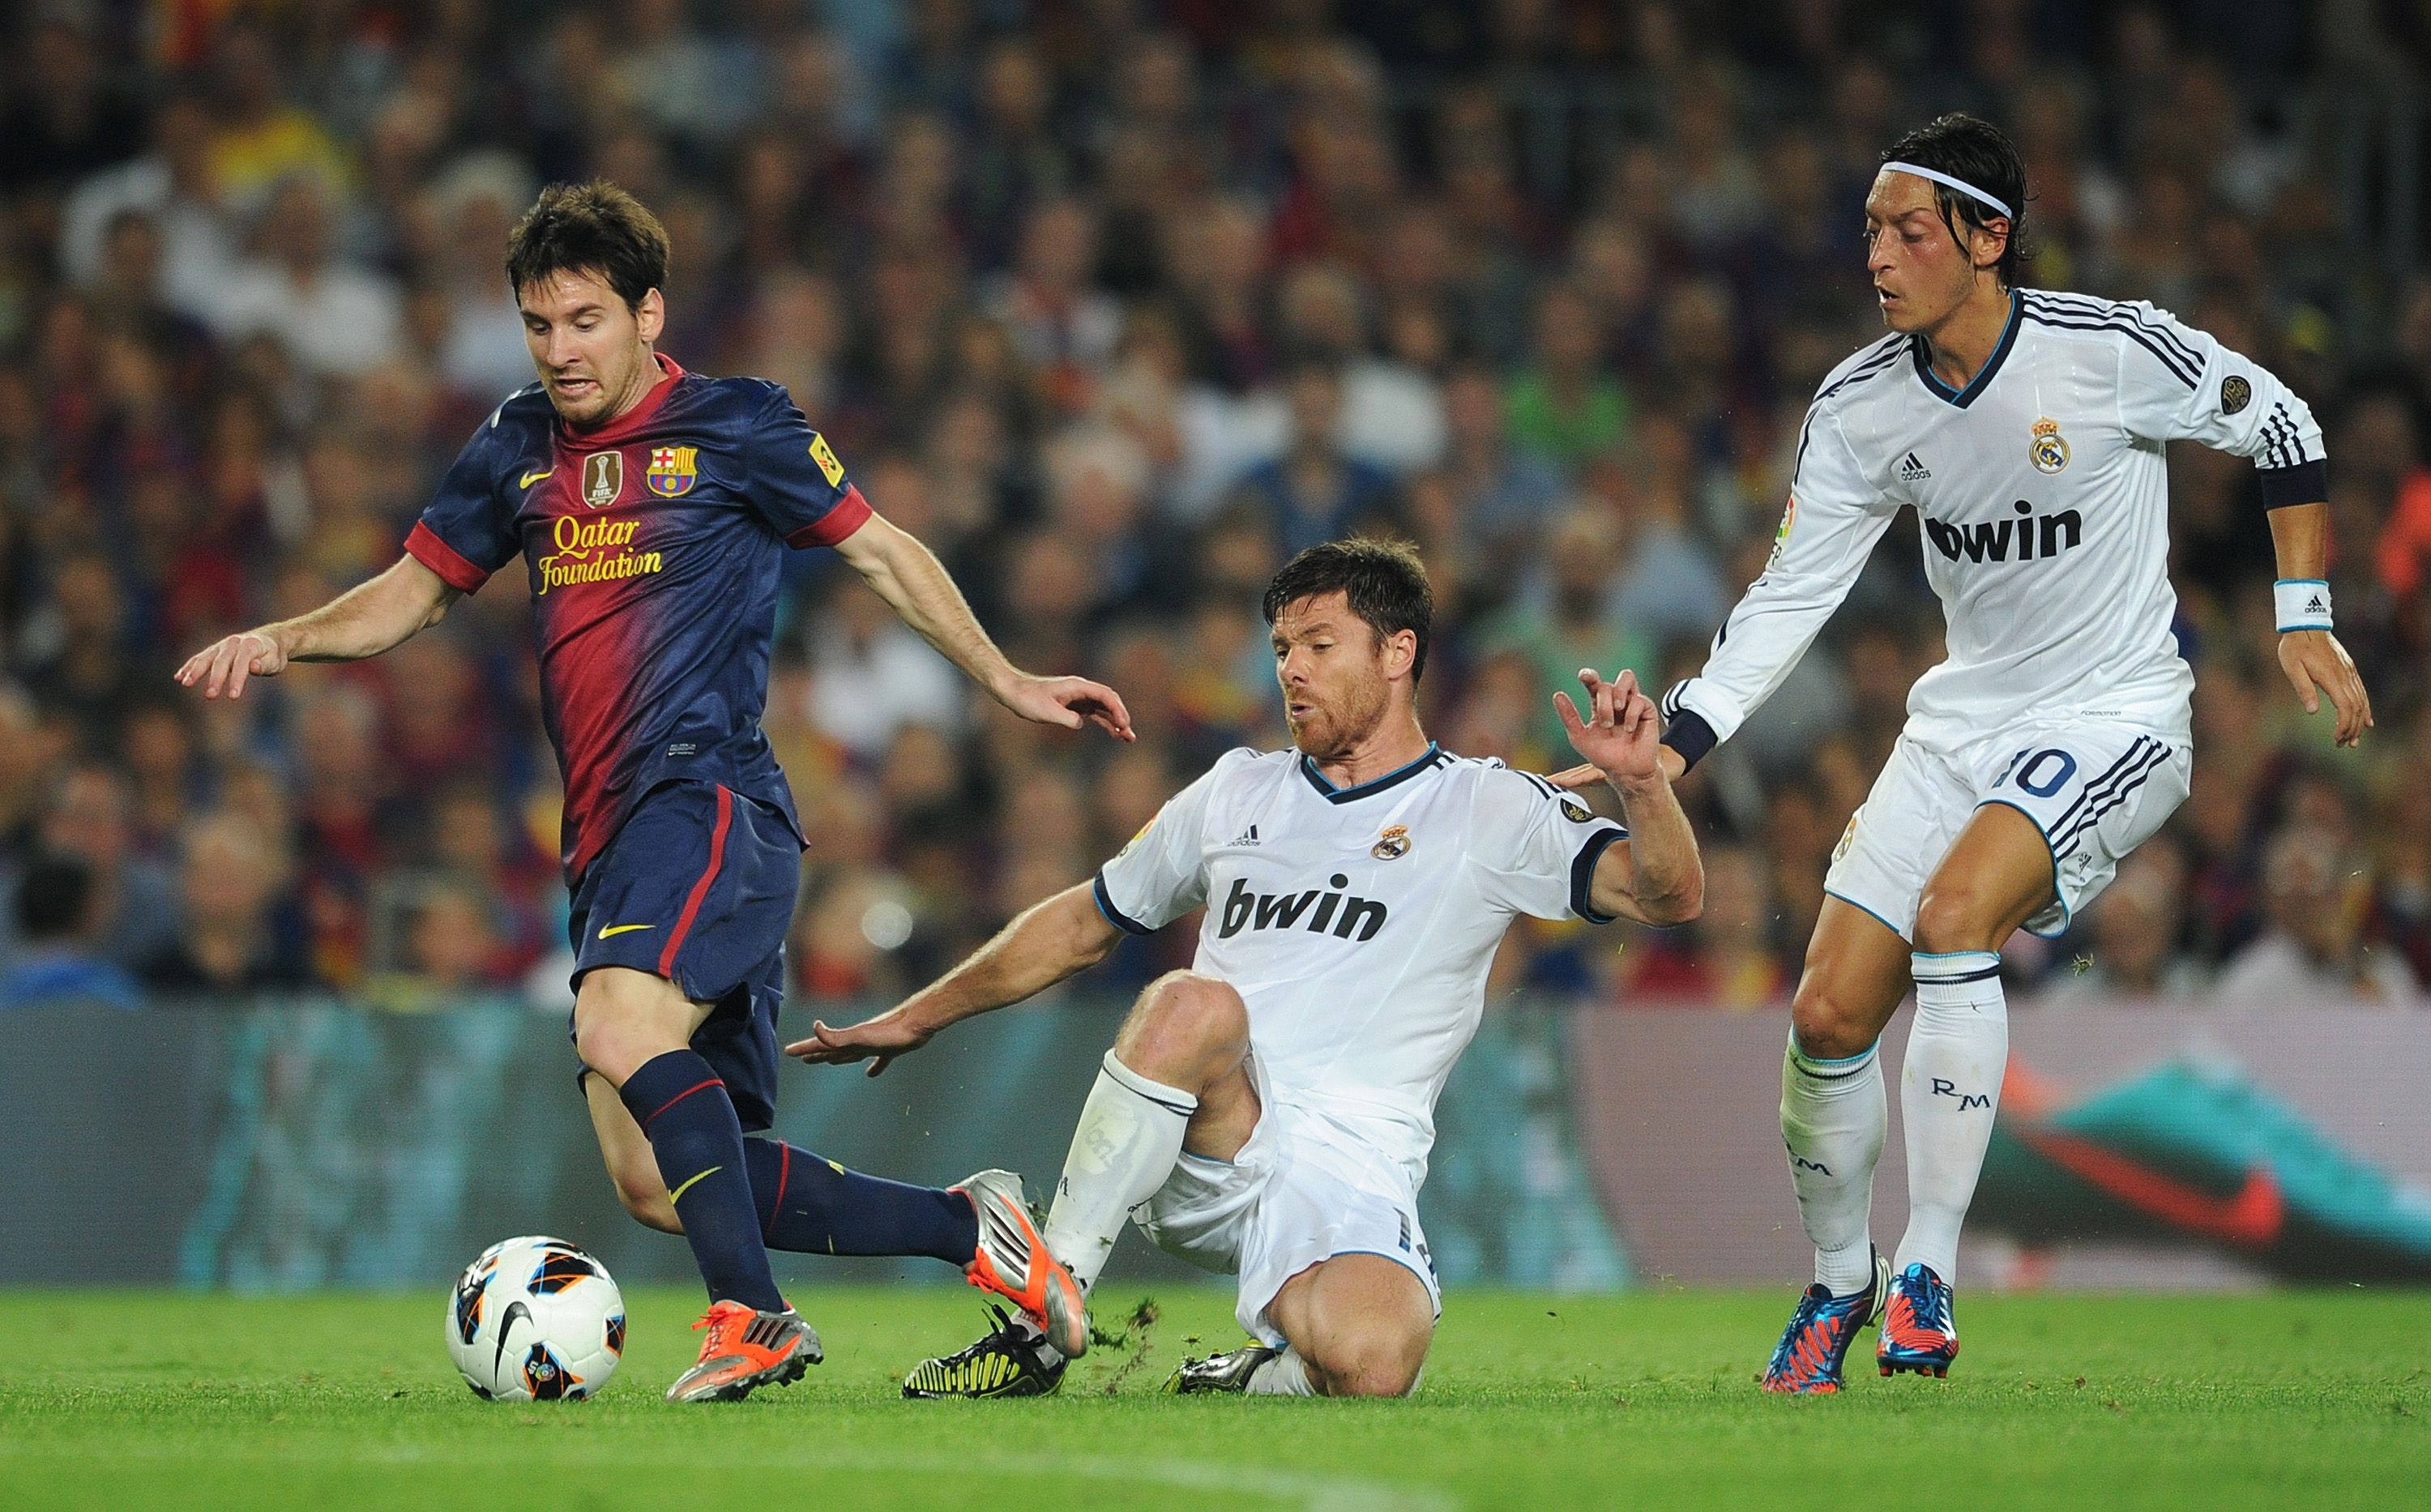 Cr7 Hd Wallpapers 1080p Lionel Messi Wallpapers High Quality Download Free